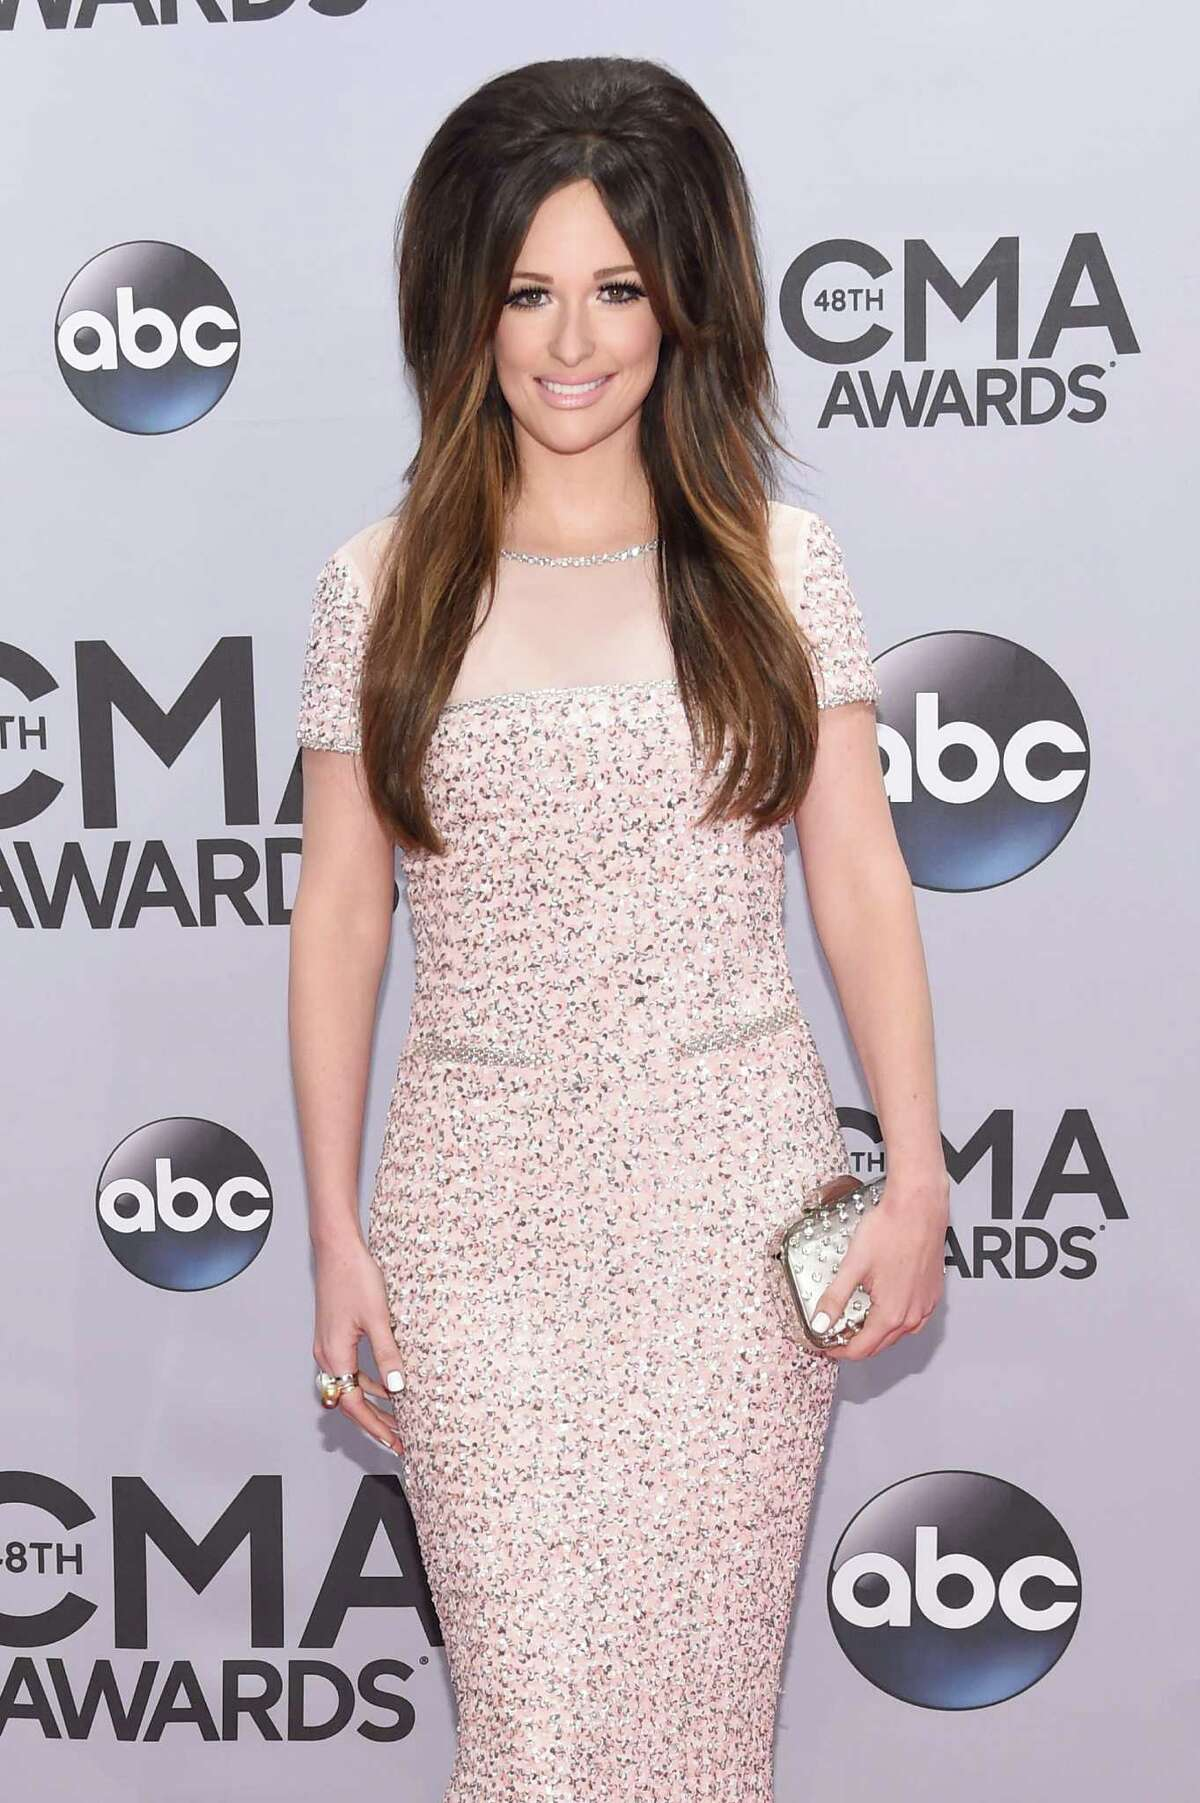 Oh Kacey Musgraves of Texas, we love you, but this look is not working.